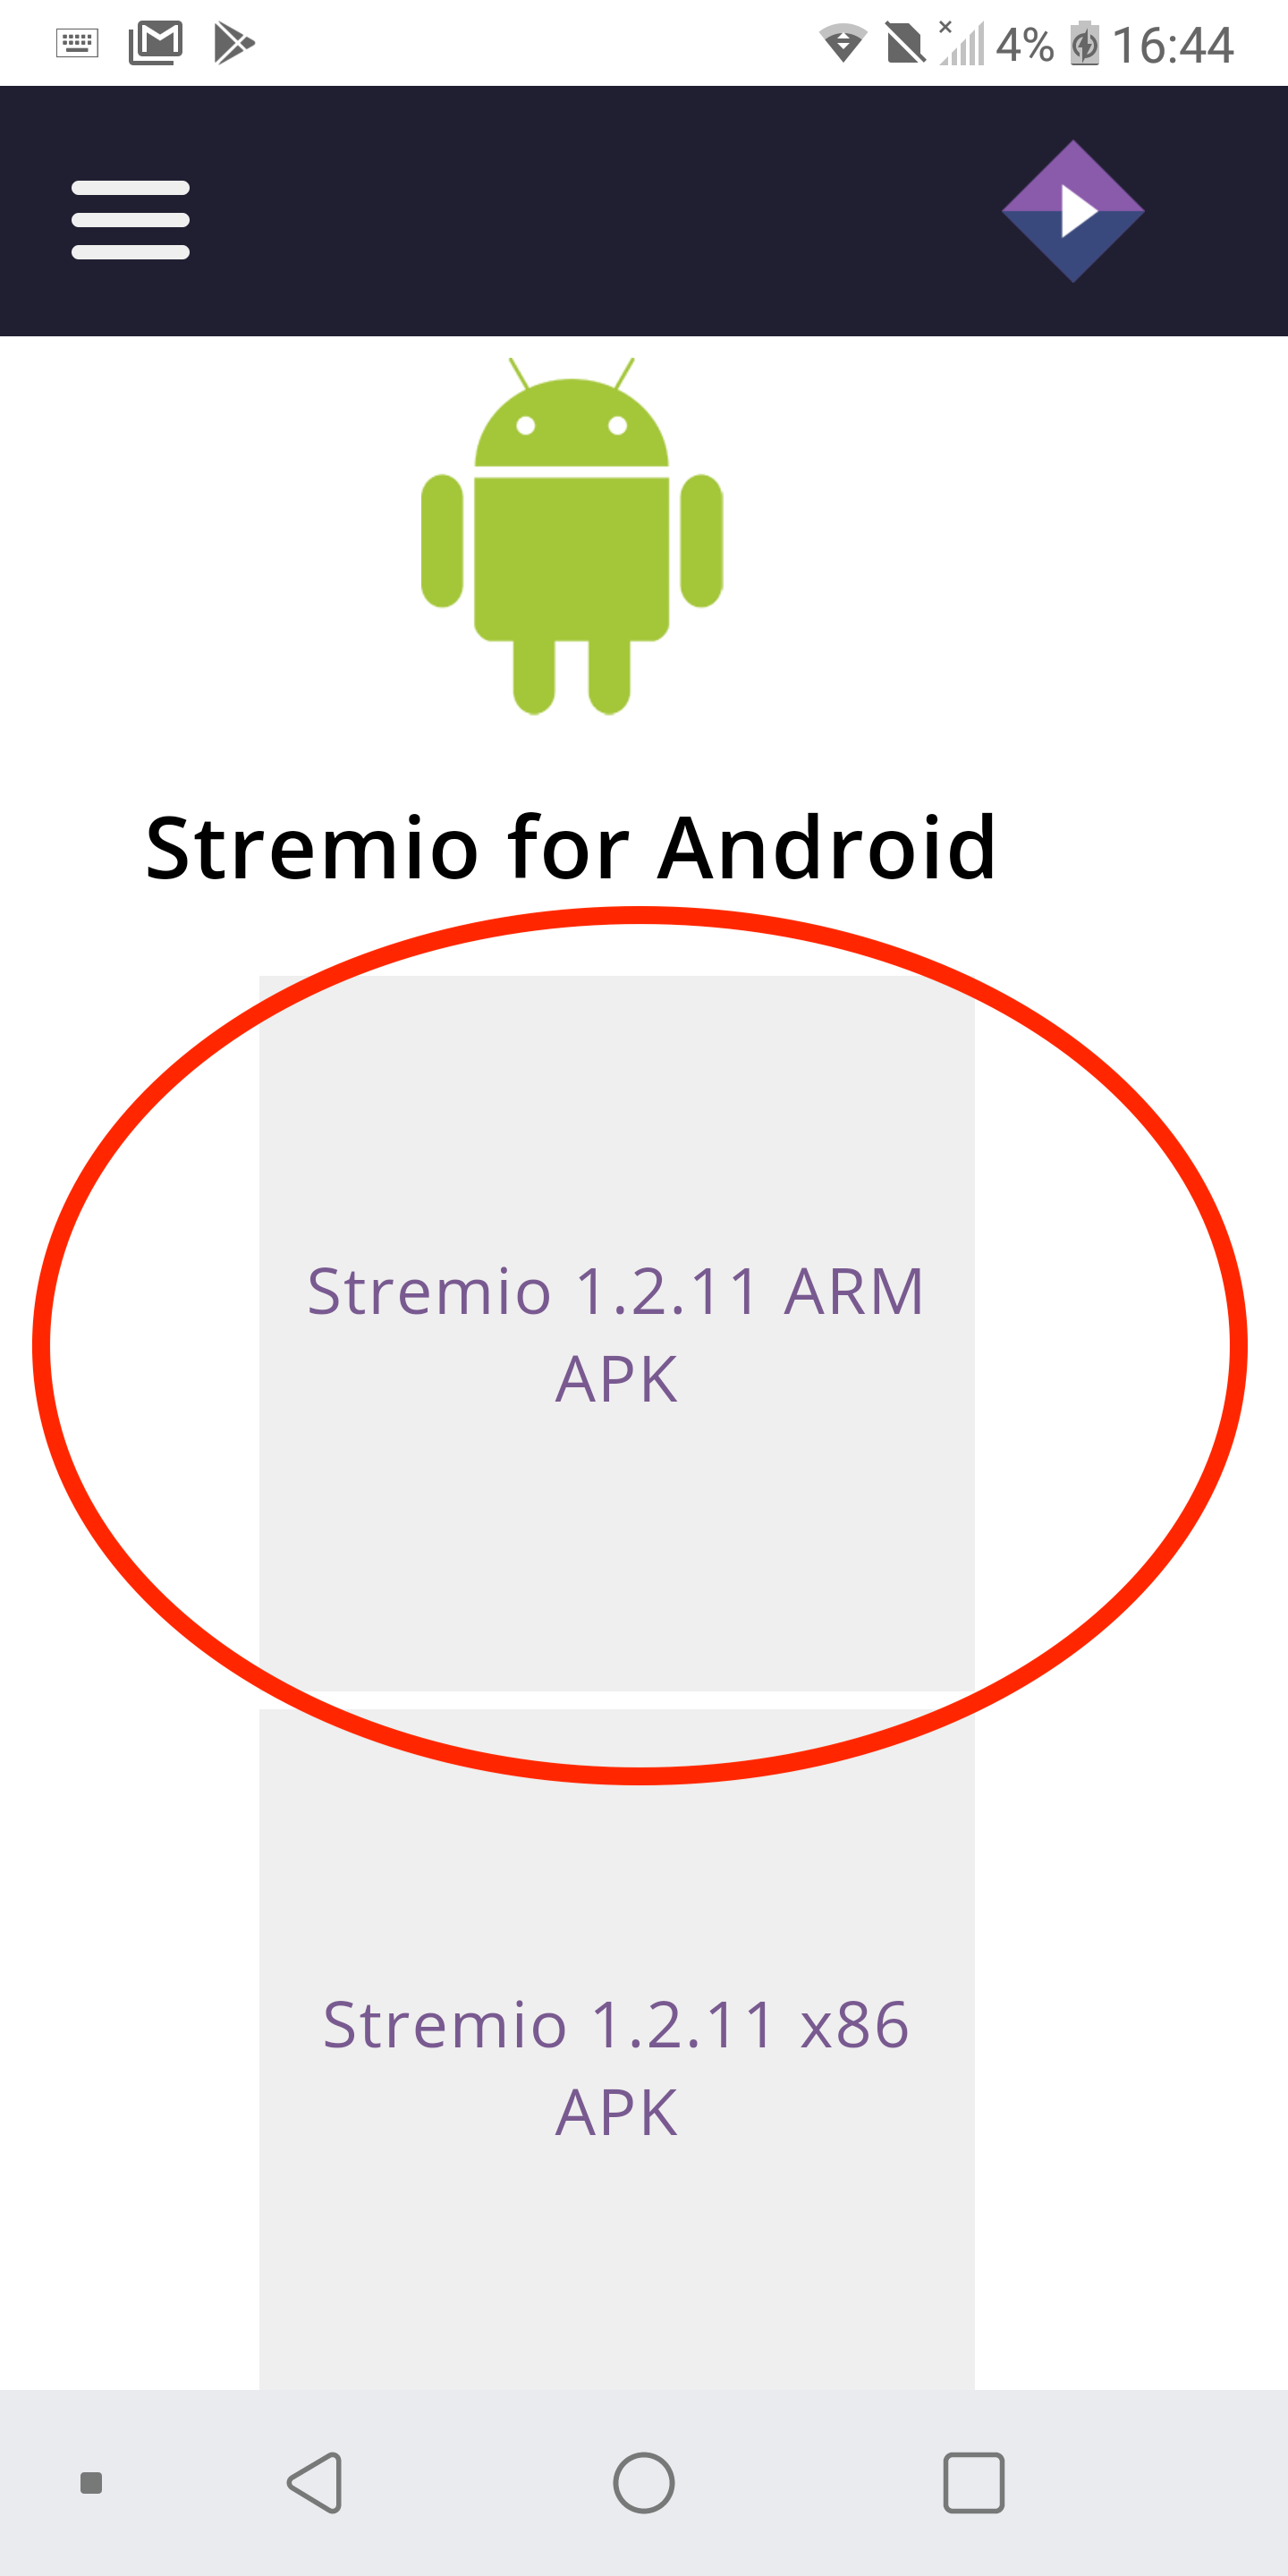 How to install the Stremio APK on Android